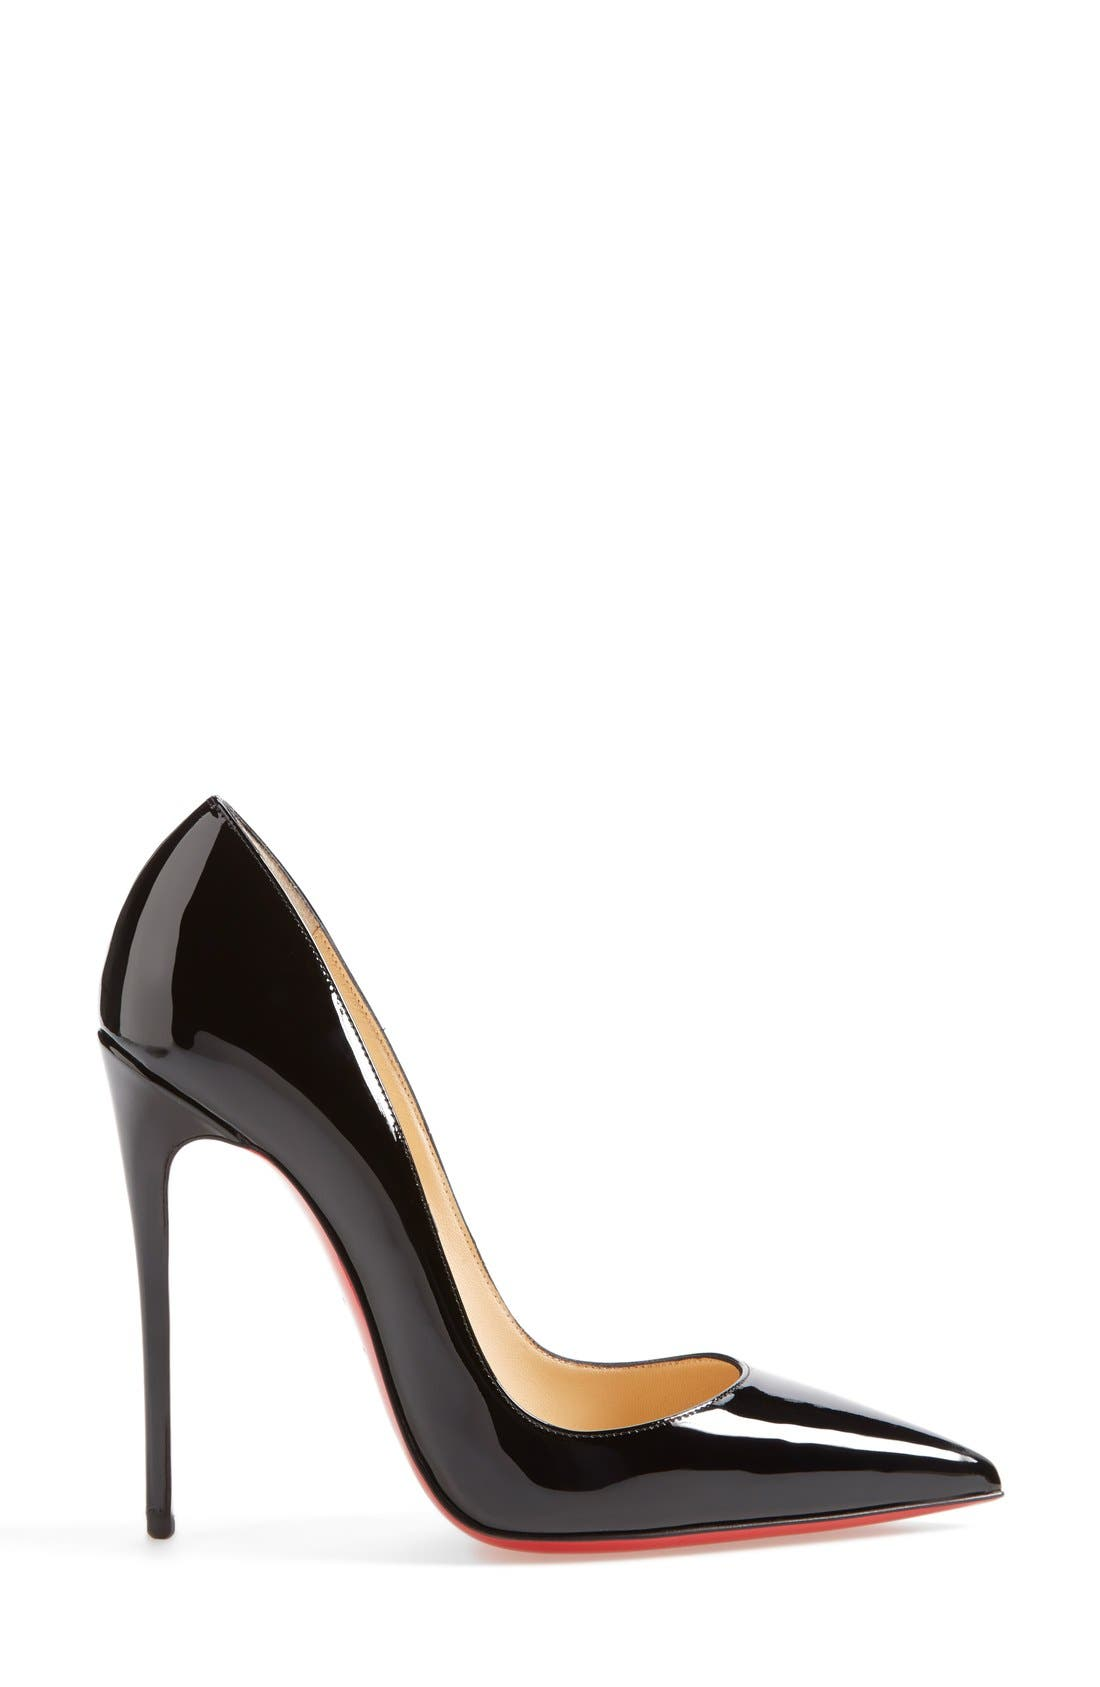 christian louboutin kate black